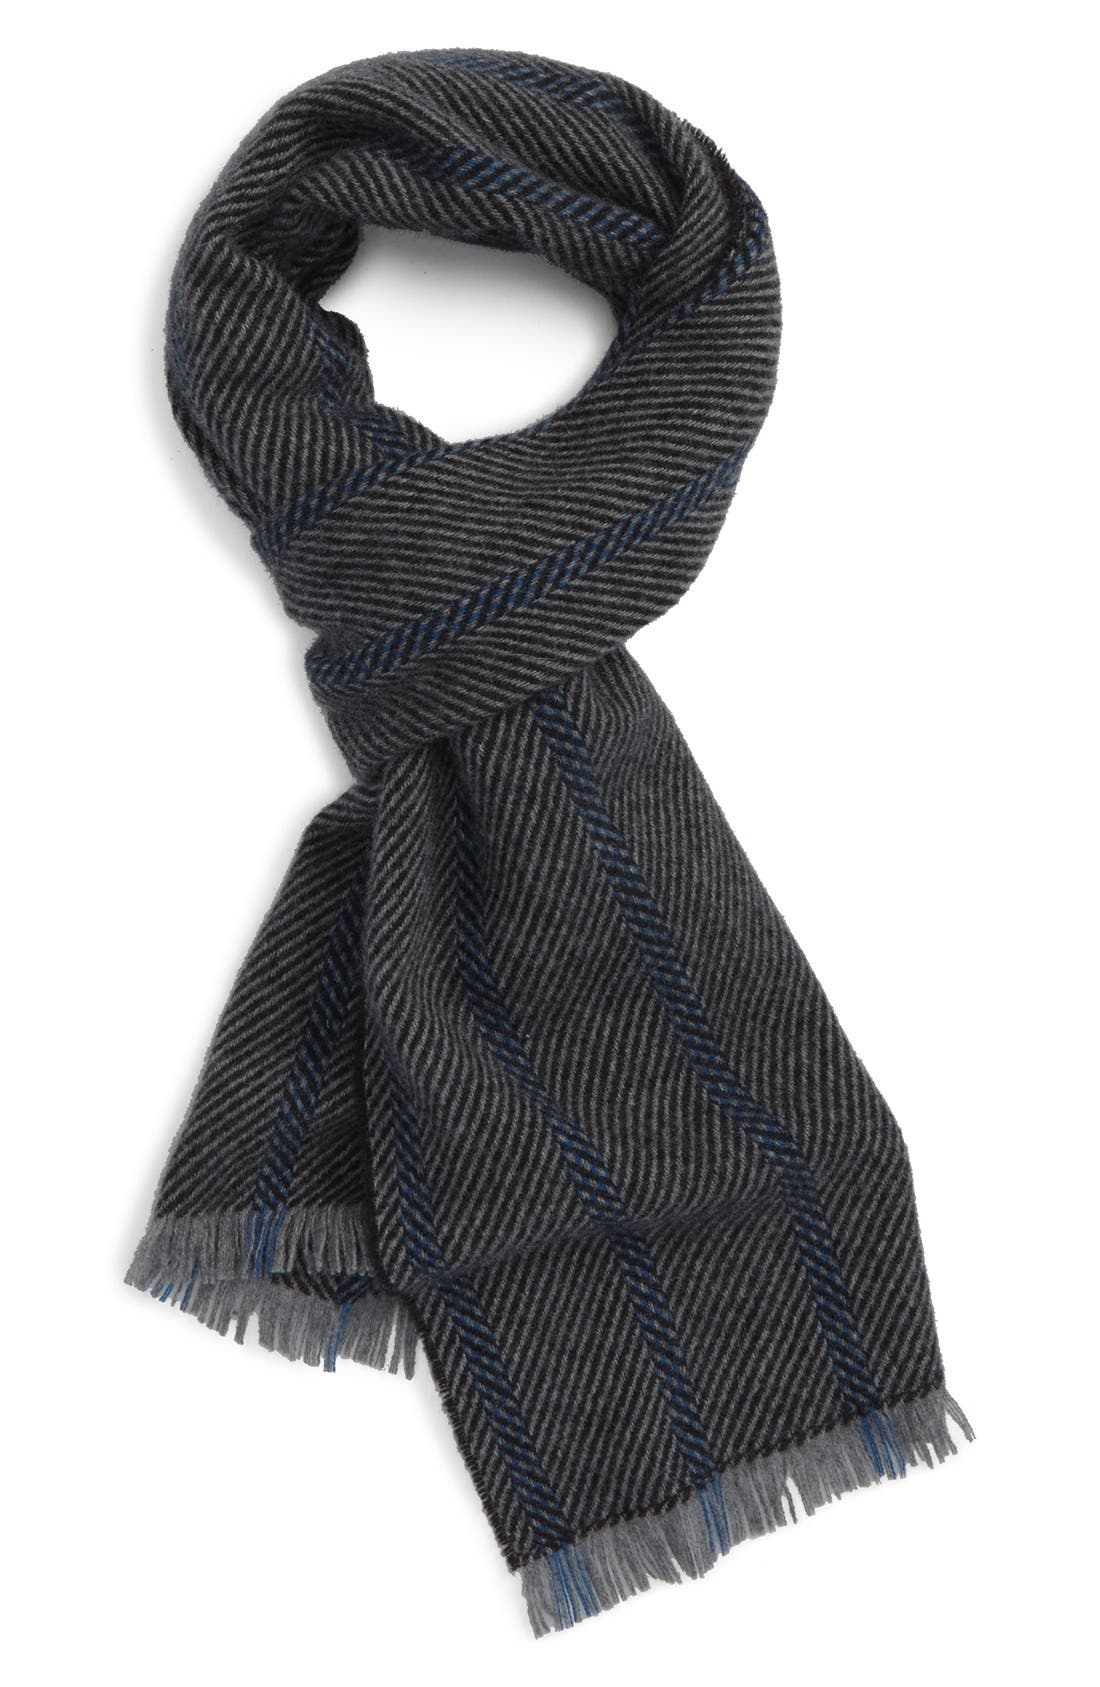 Stripe Cashmere Scarf,                         Main,                         color, Black/ Grey/ Cobalt